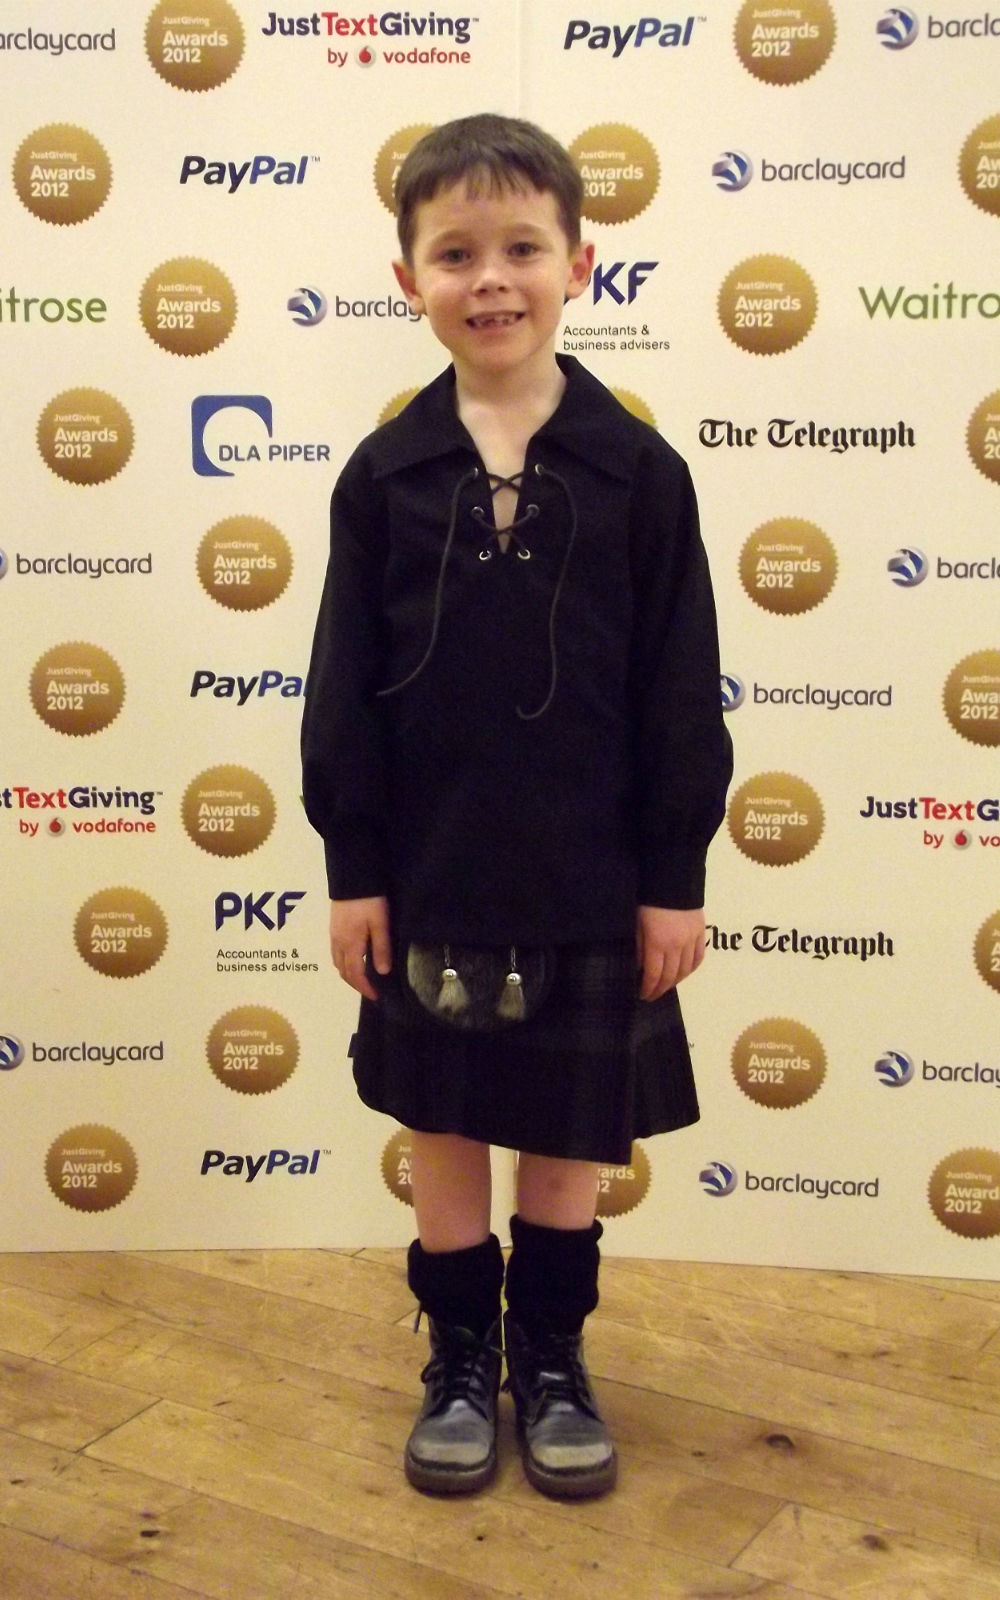 Jack rocking his casual kilt combo (and Doctor Who shoes) for the JustGiving Awards 2011 (in London)